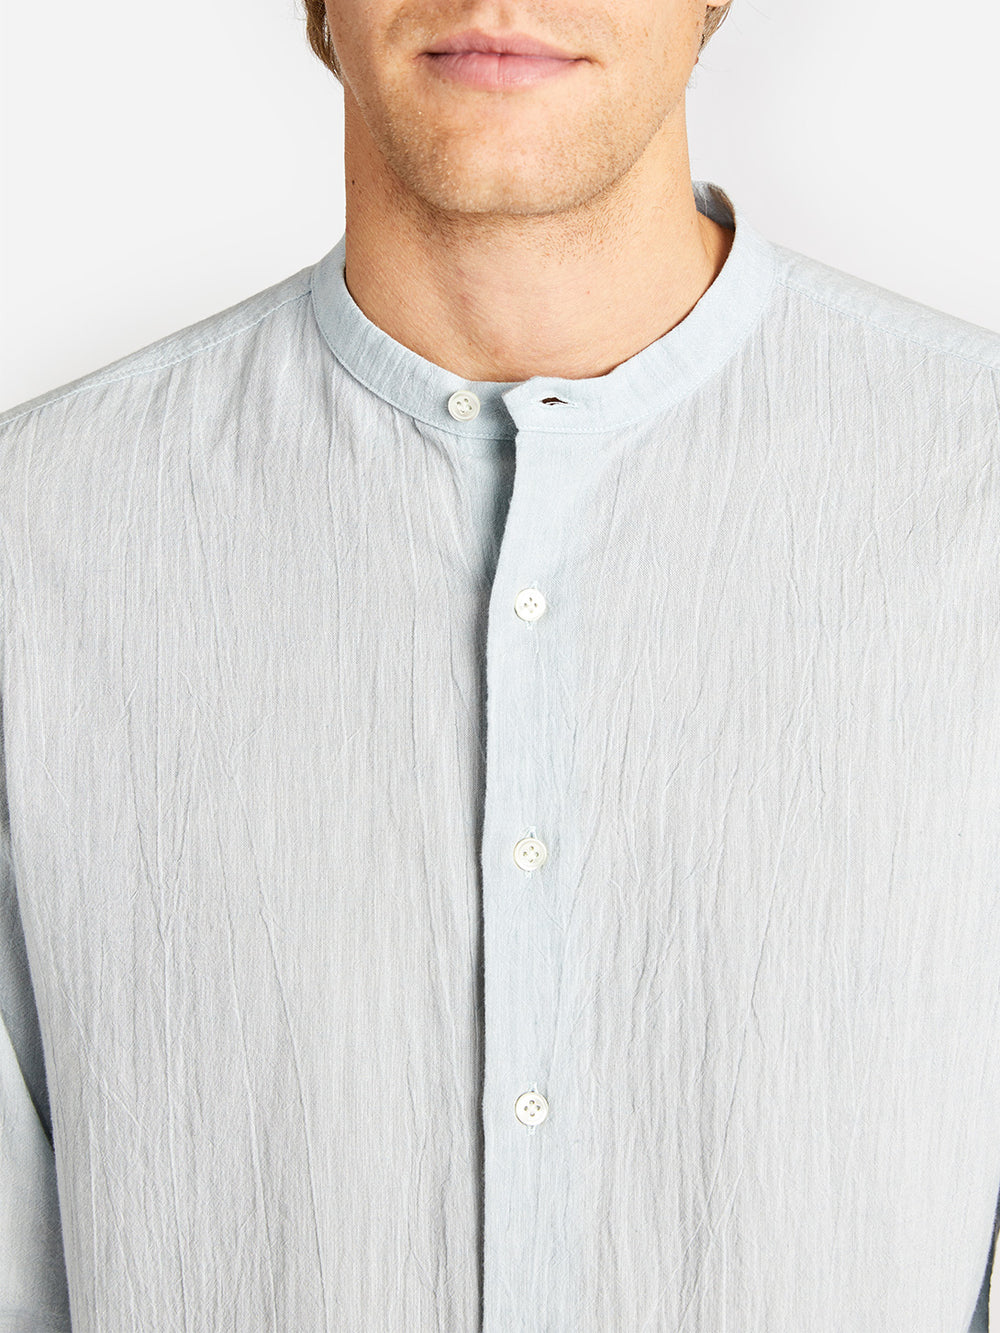 EDEN STAND COLLAR SHIRT SEA FOAM GREY LABEL